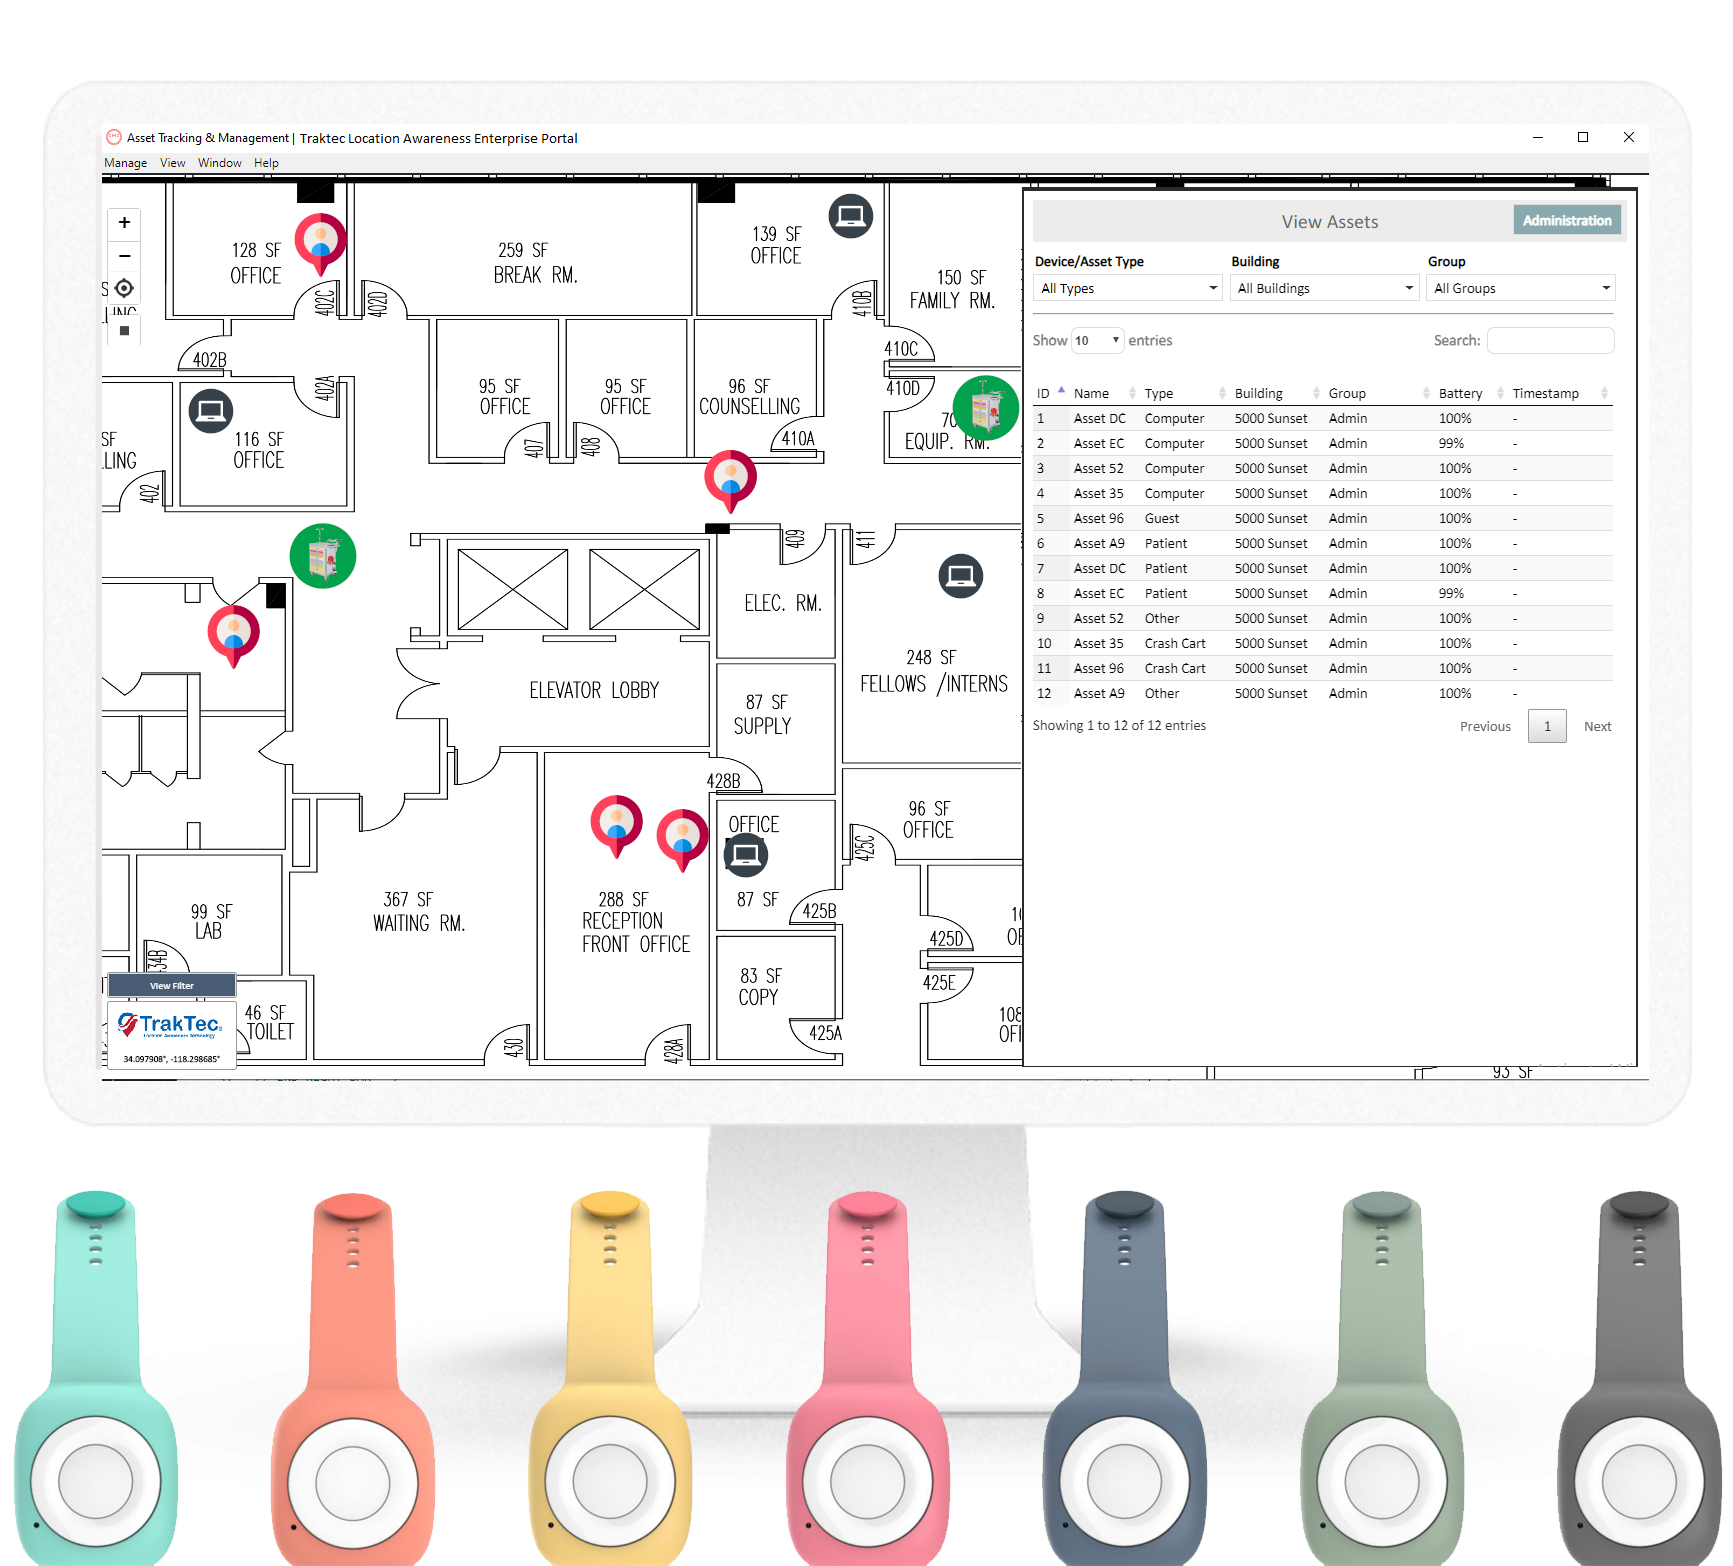 SafetyNet Tracking Solutions user Interface for Assisted Living Asset Management